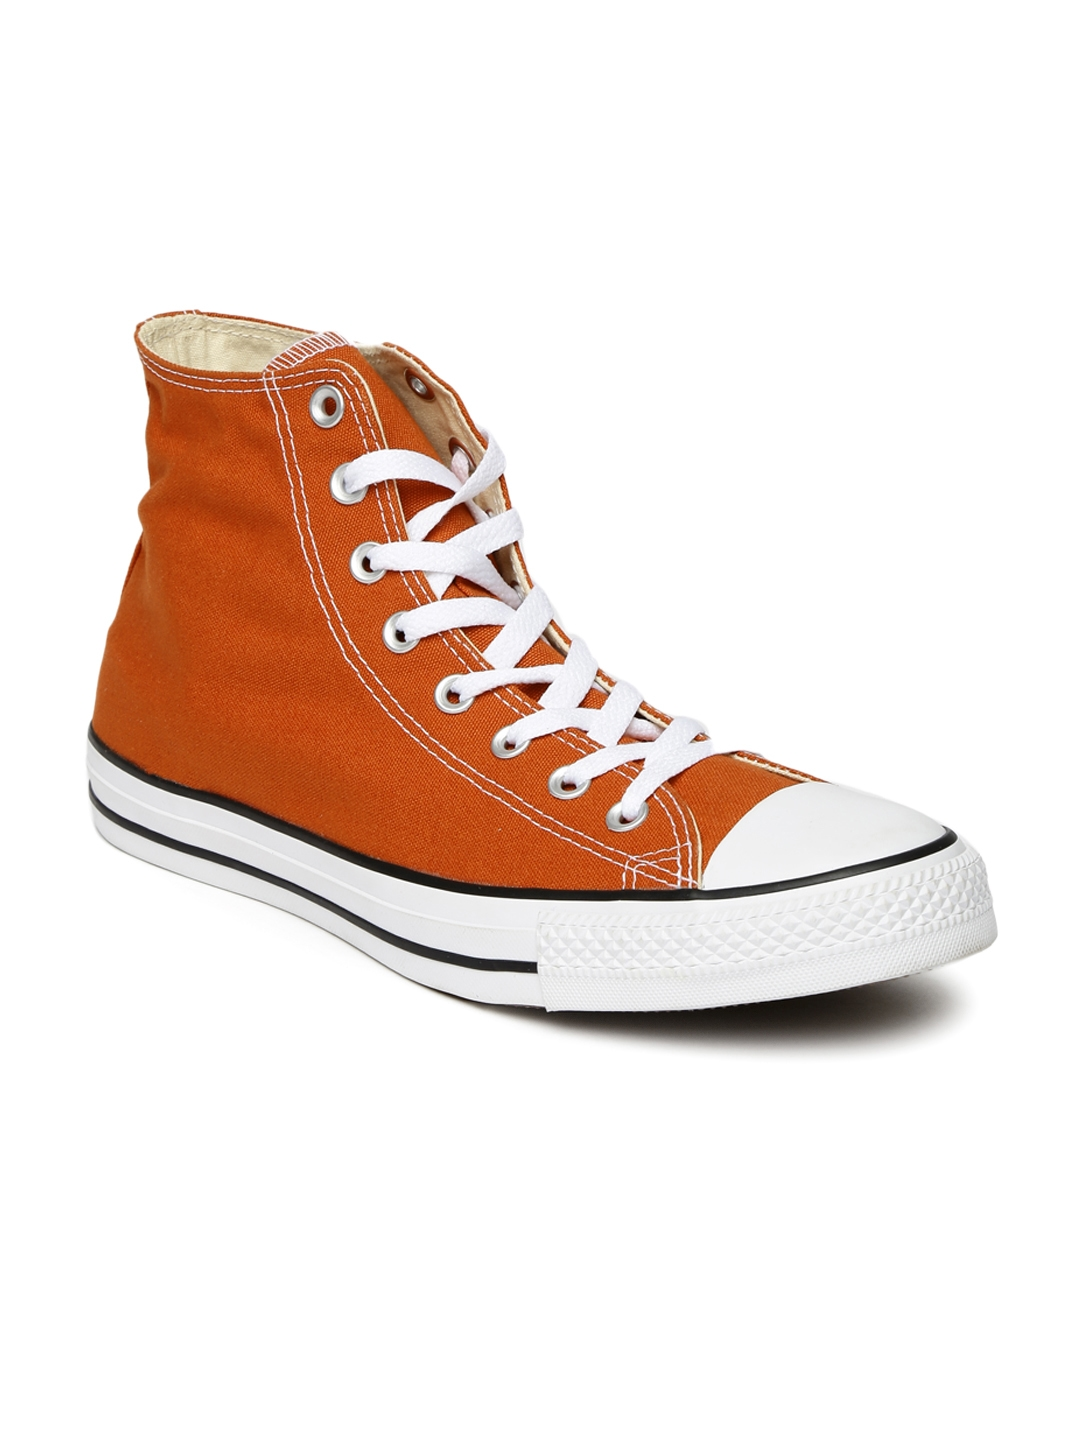 cc8a8f52121 Buy Converse Unisex Orange Sneakers - Casual Shoes for Unisex ...